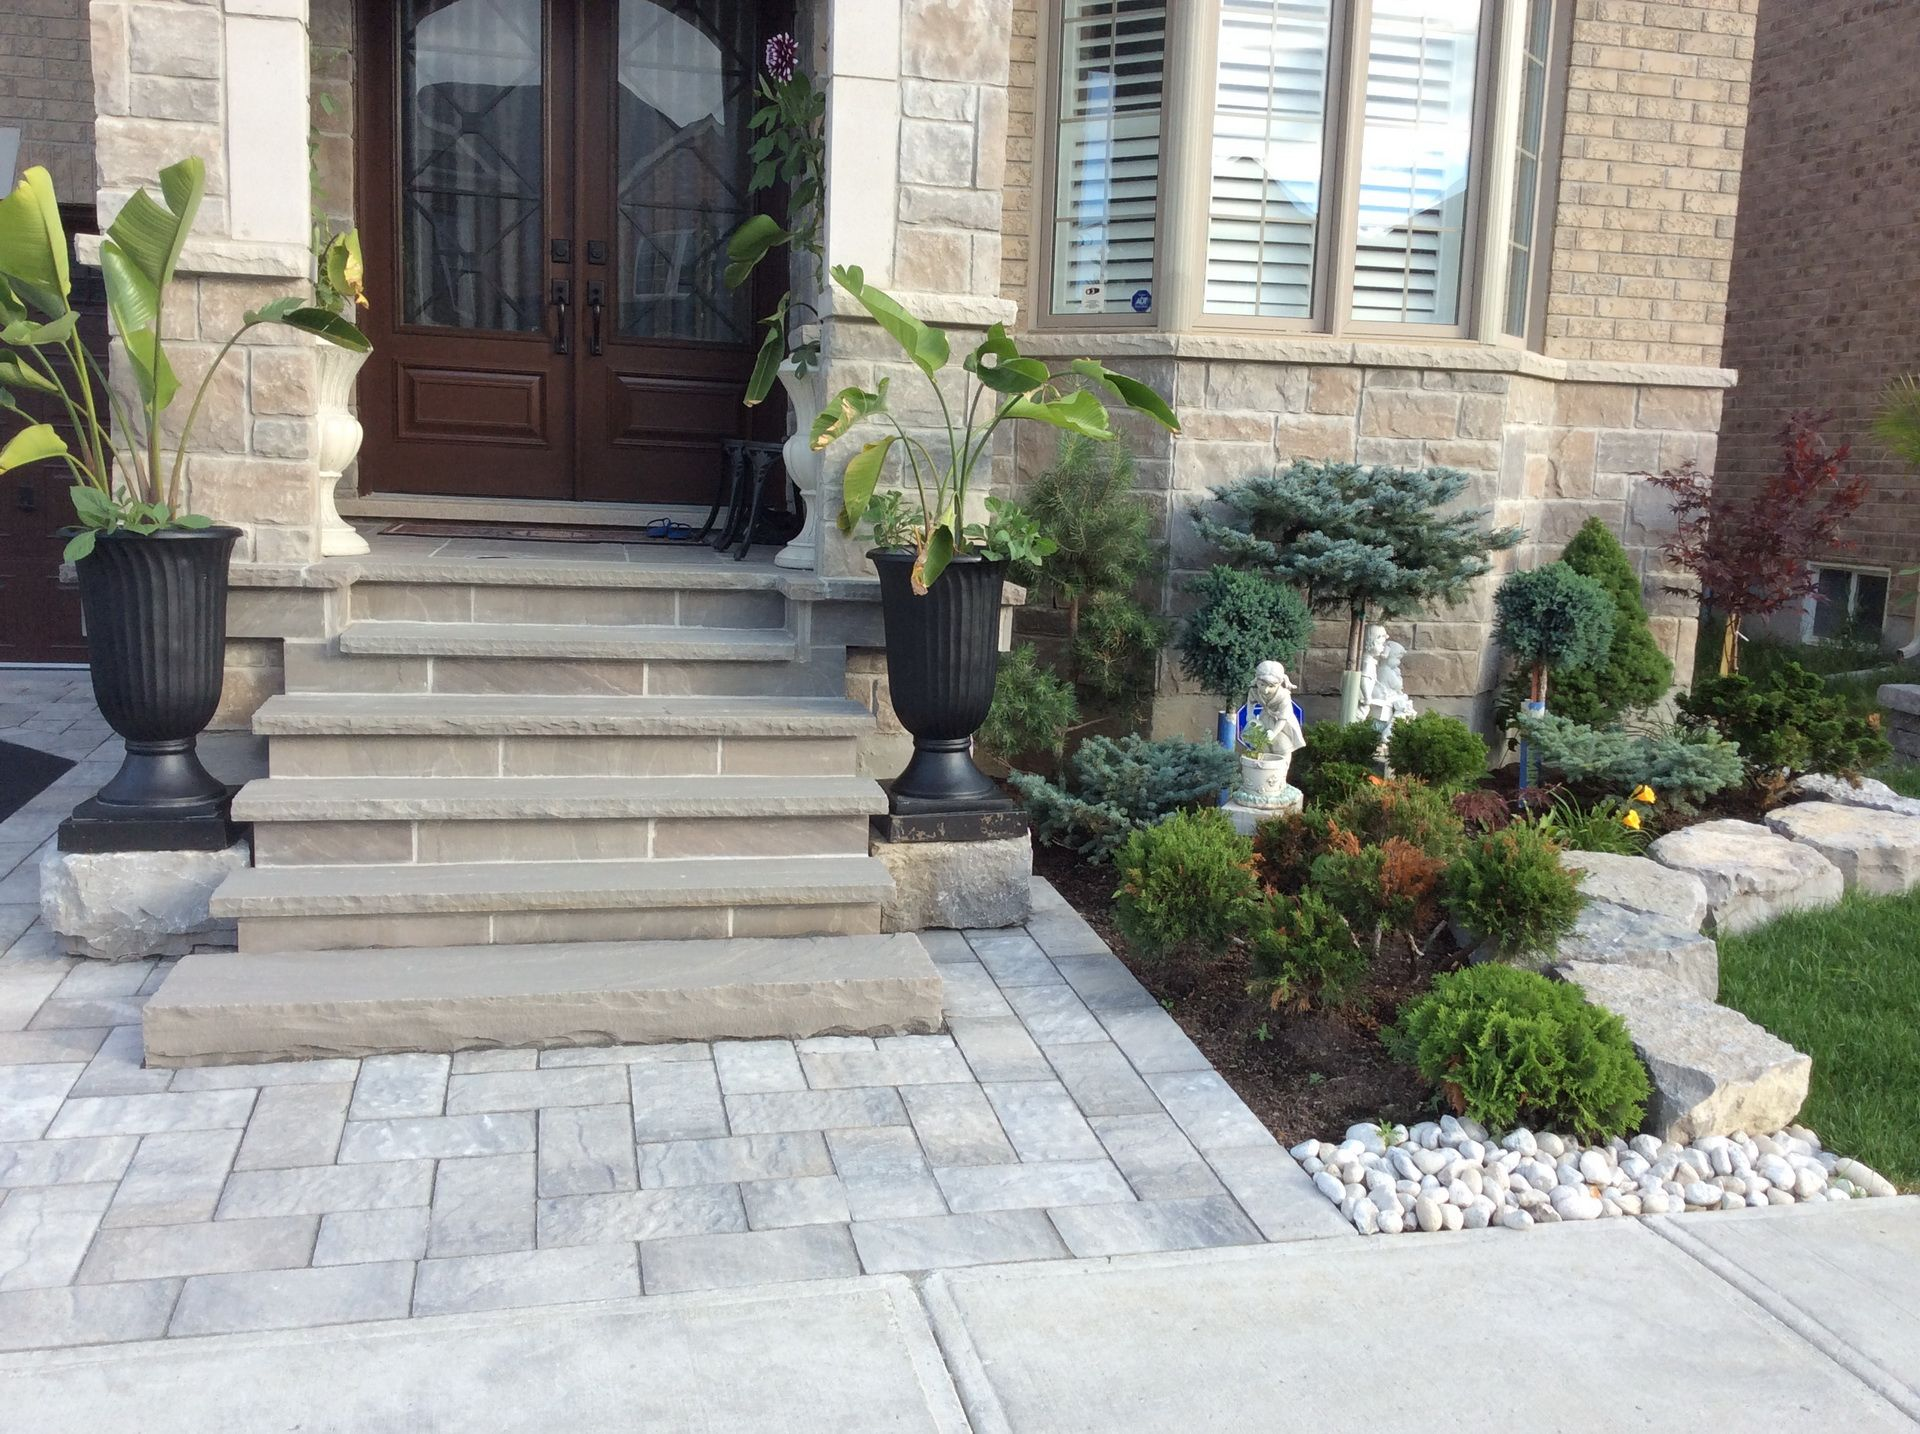 Armour stone landscaping front yard landscaping for Stone landscaping ideas for front yard